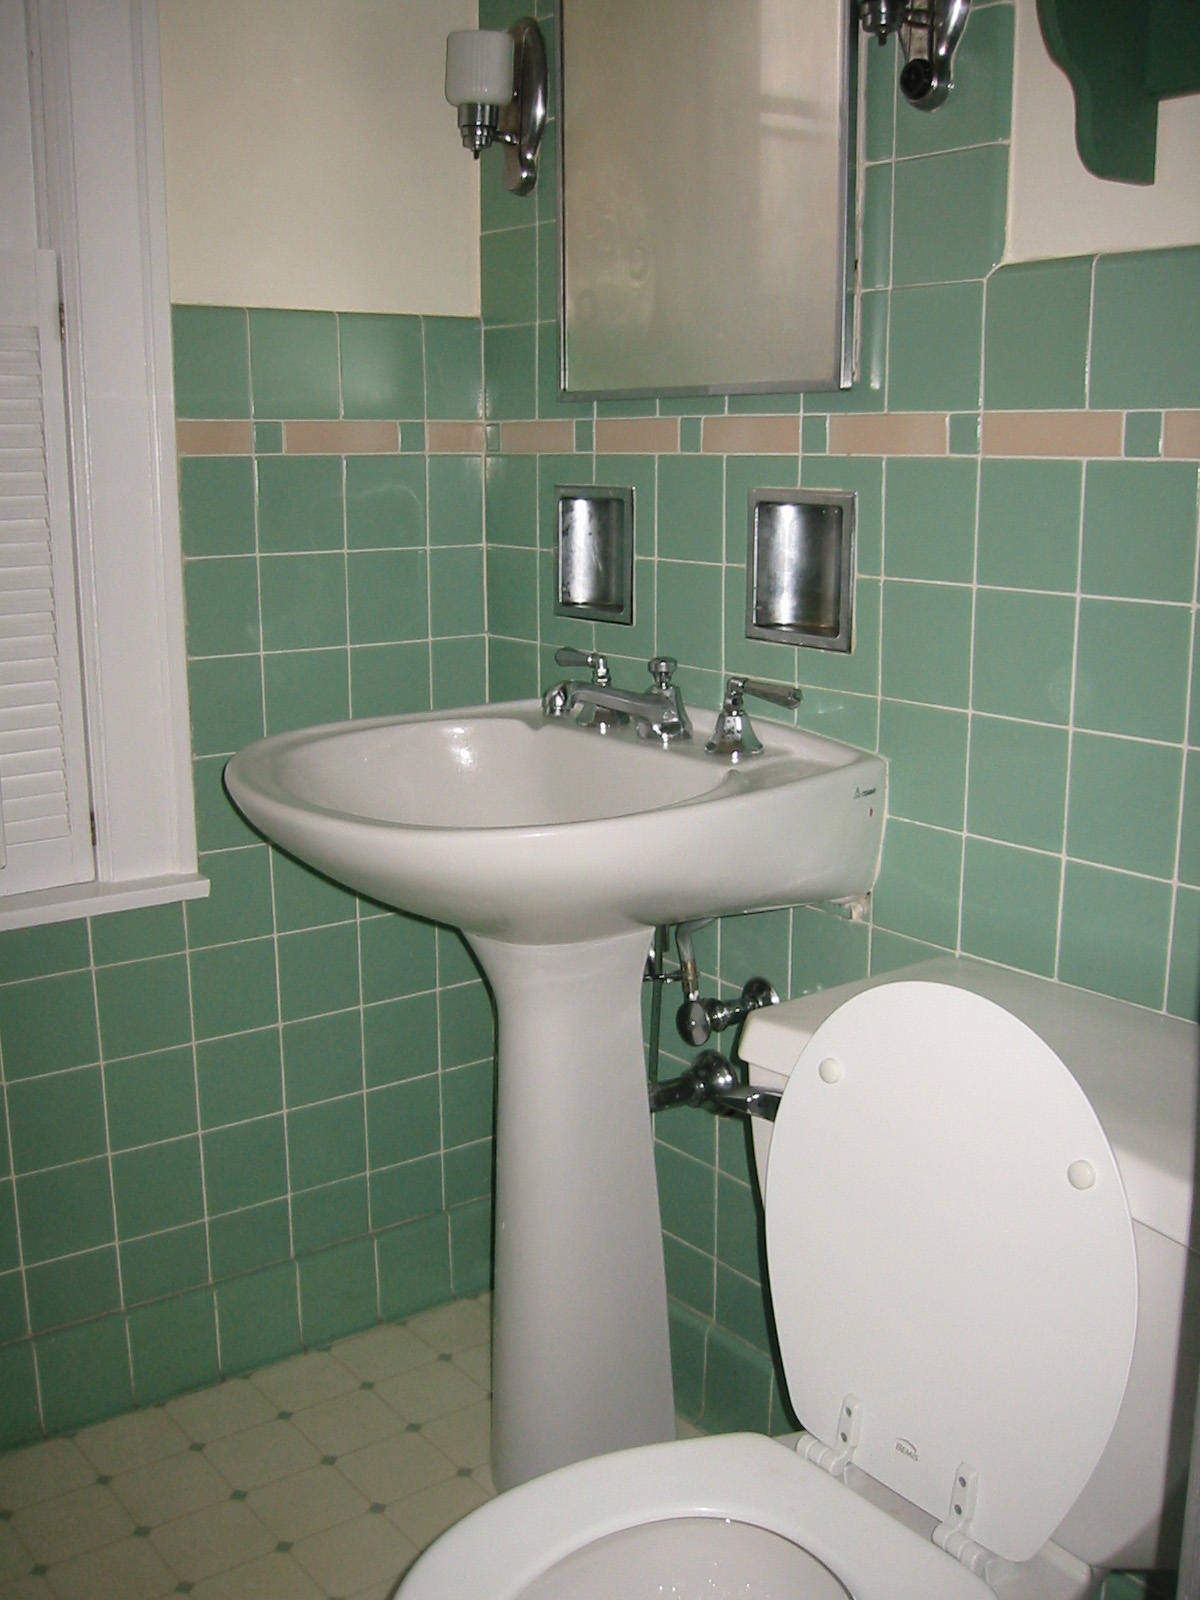 JustGrand Original 1930s Hall Bathroom Remodel